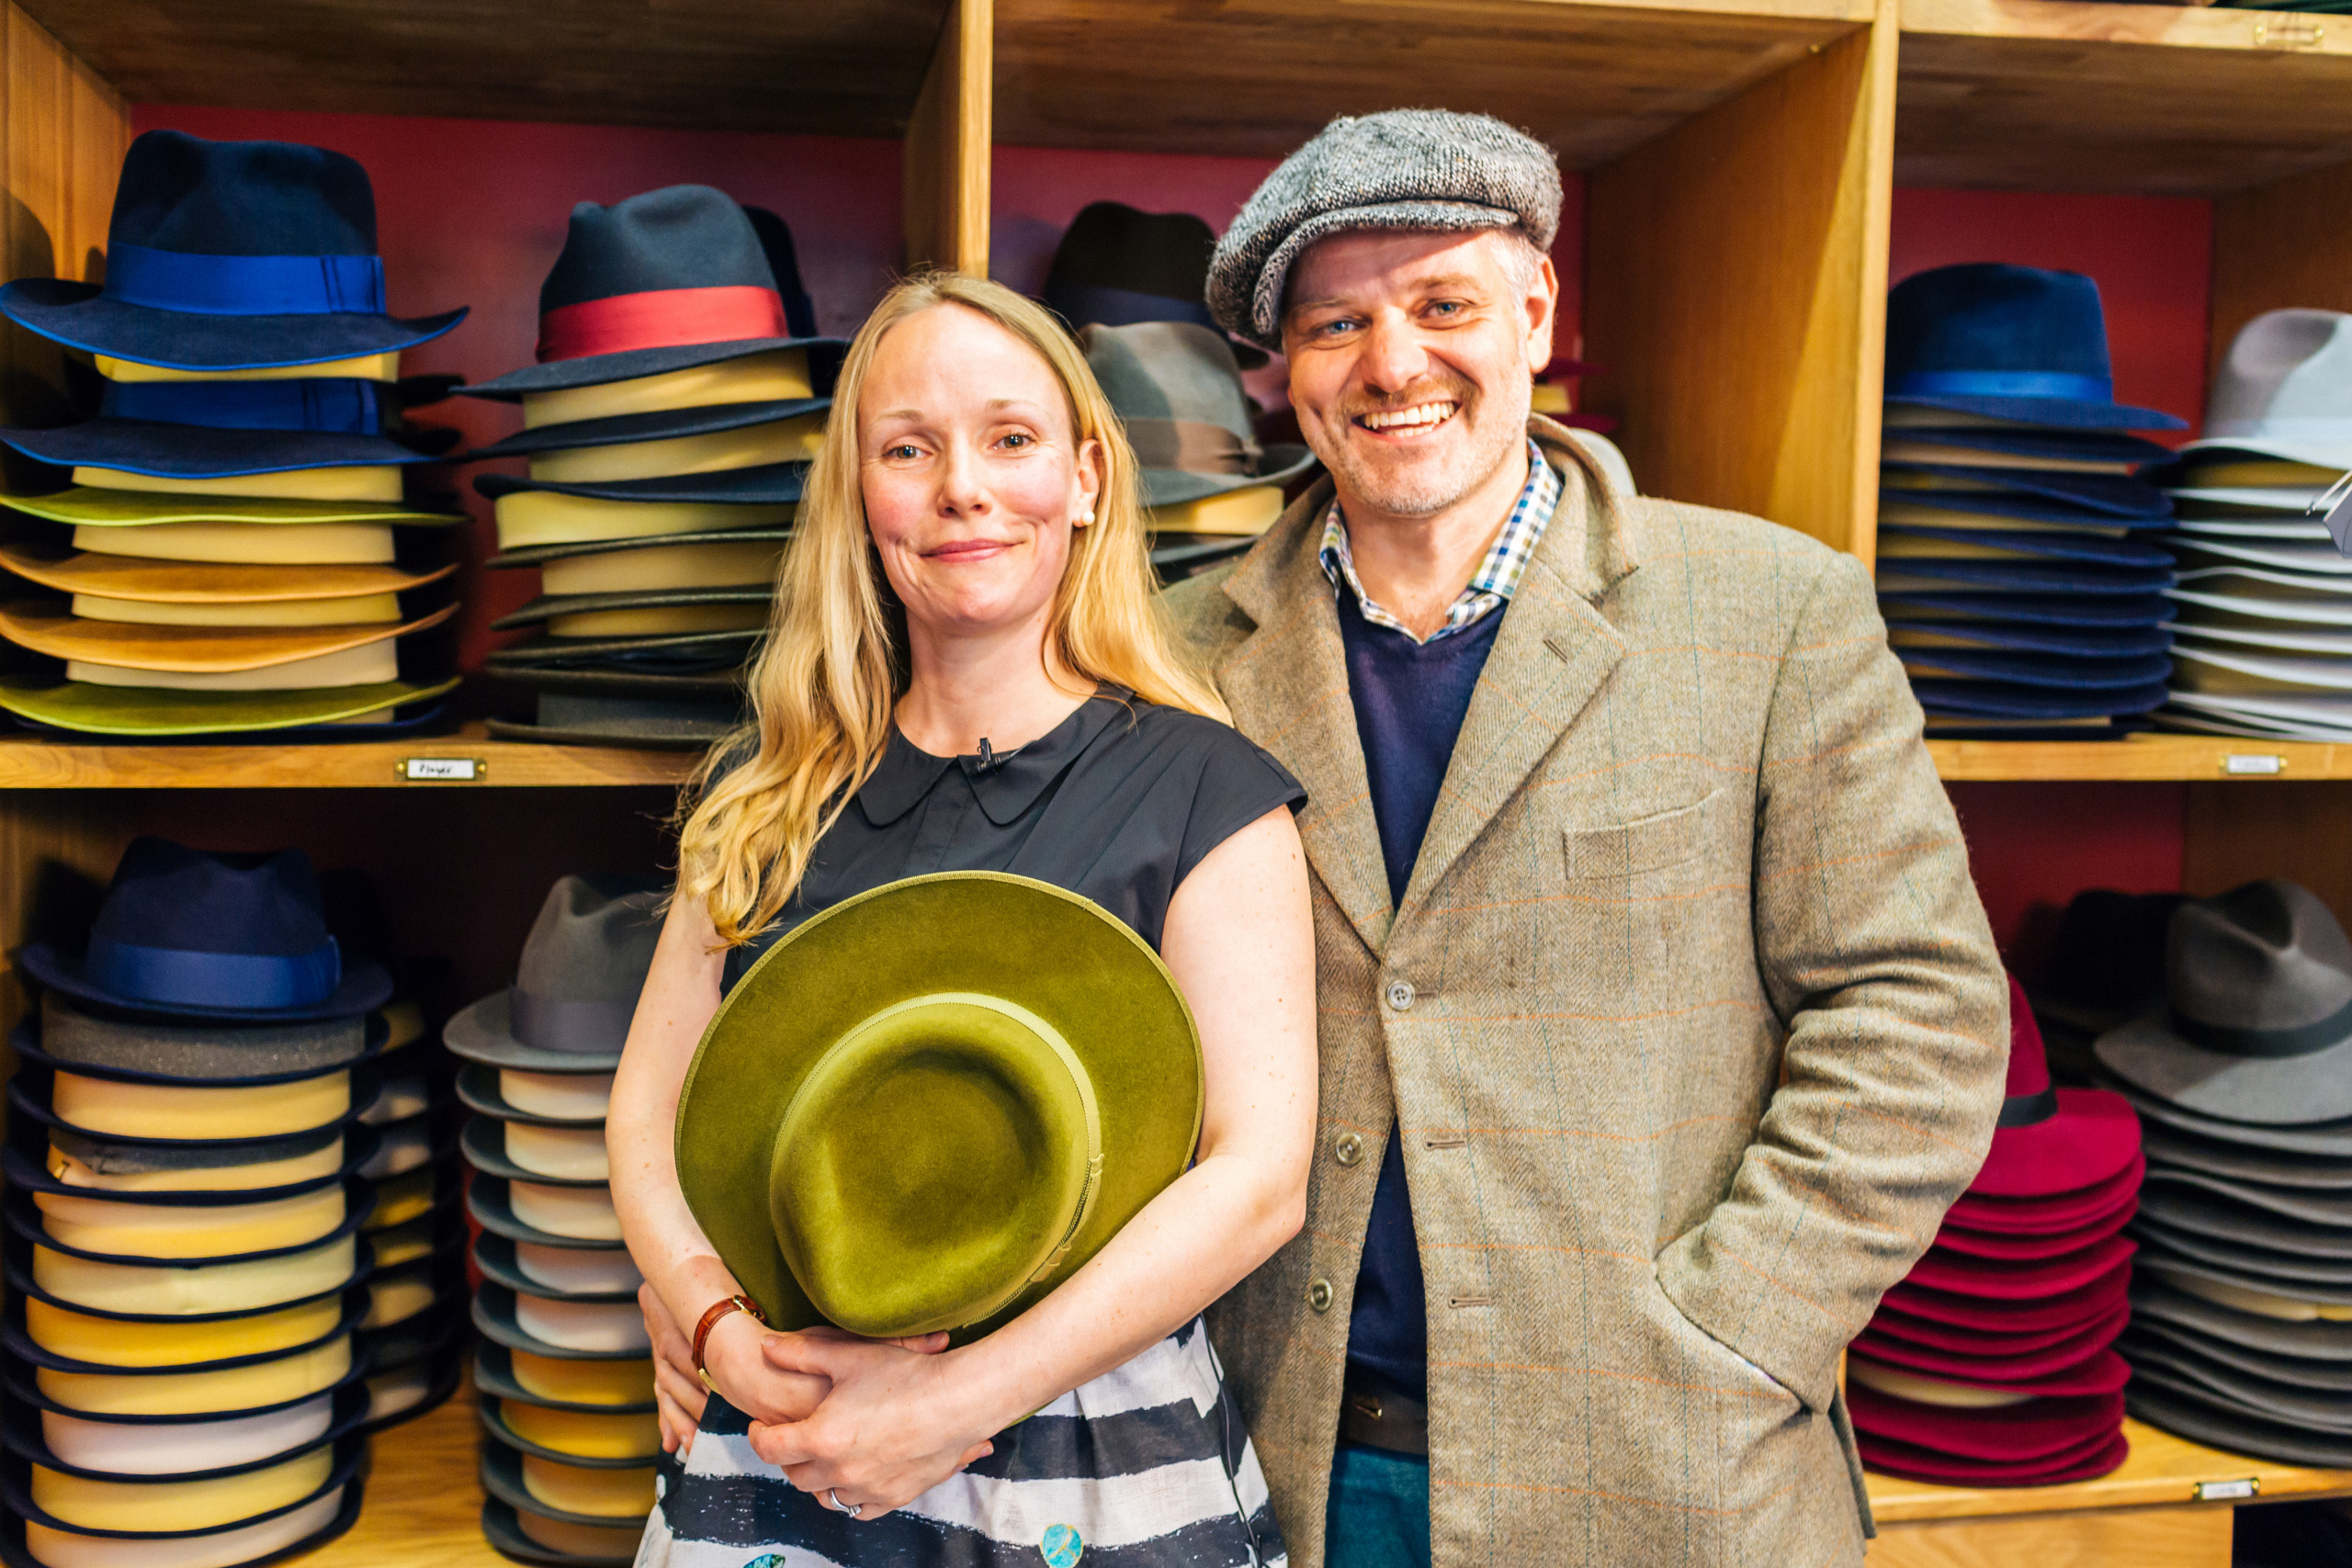 Who wants to be a milliner? British hat makers Laird Hatters turn over £1.8m from Hollywood hat craze